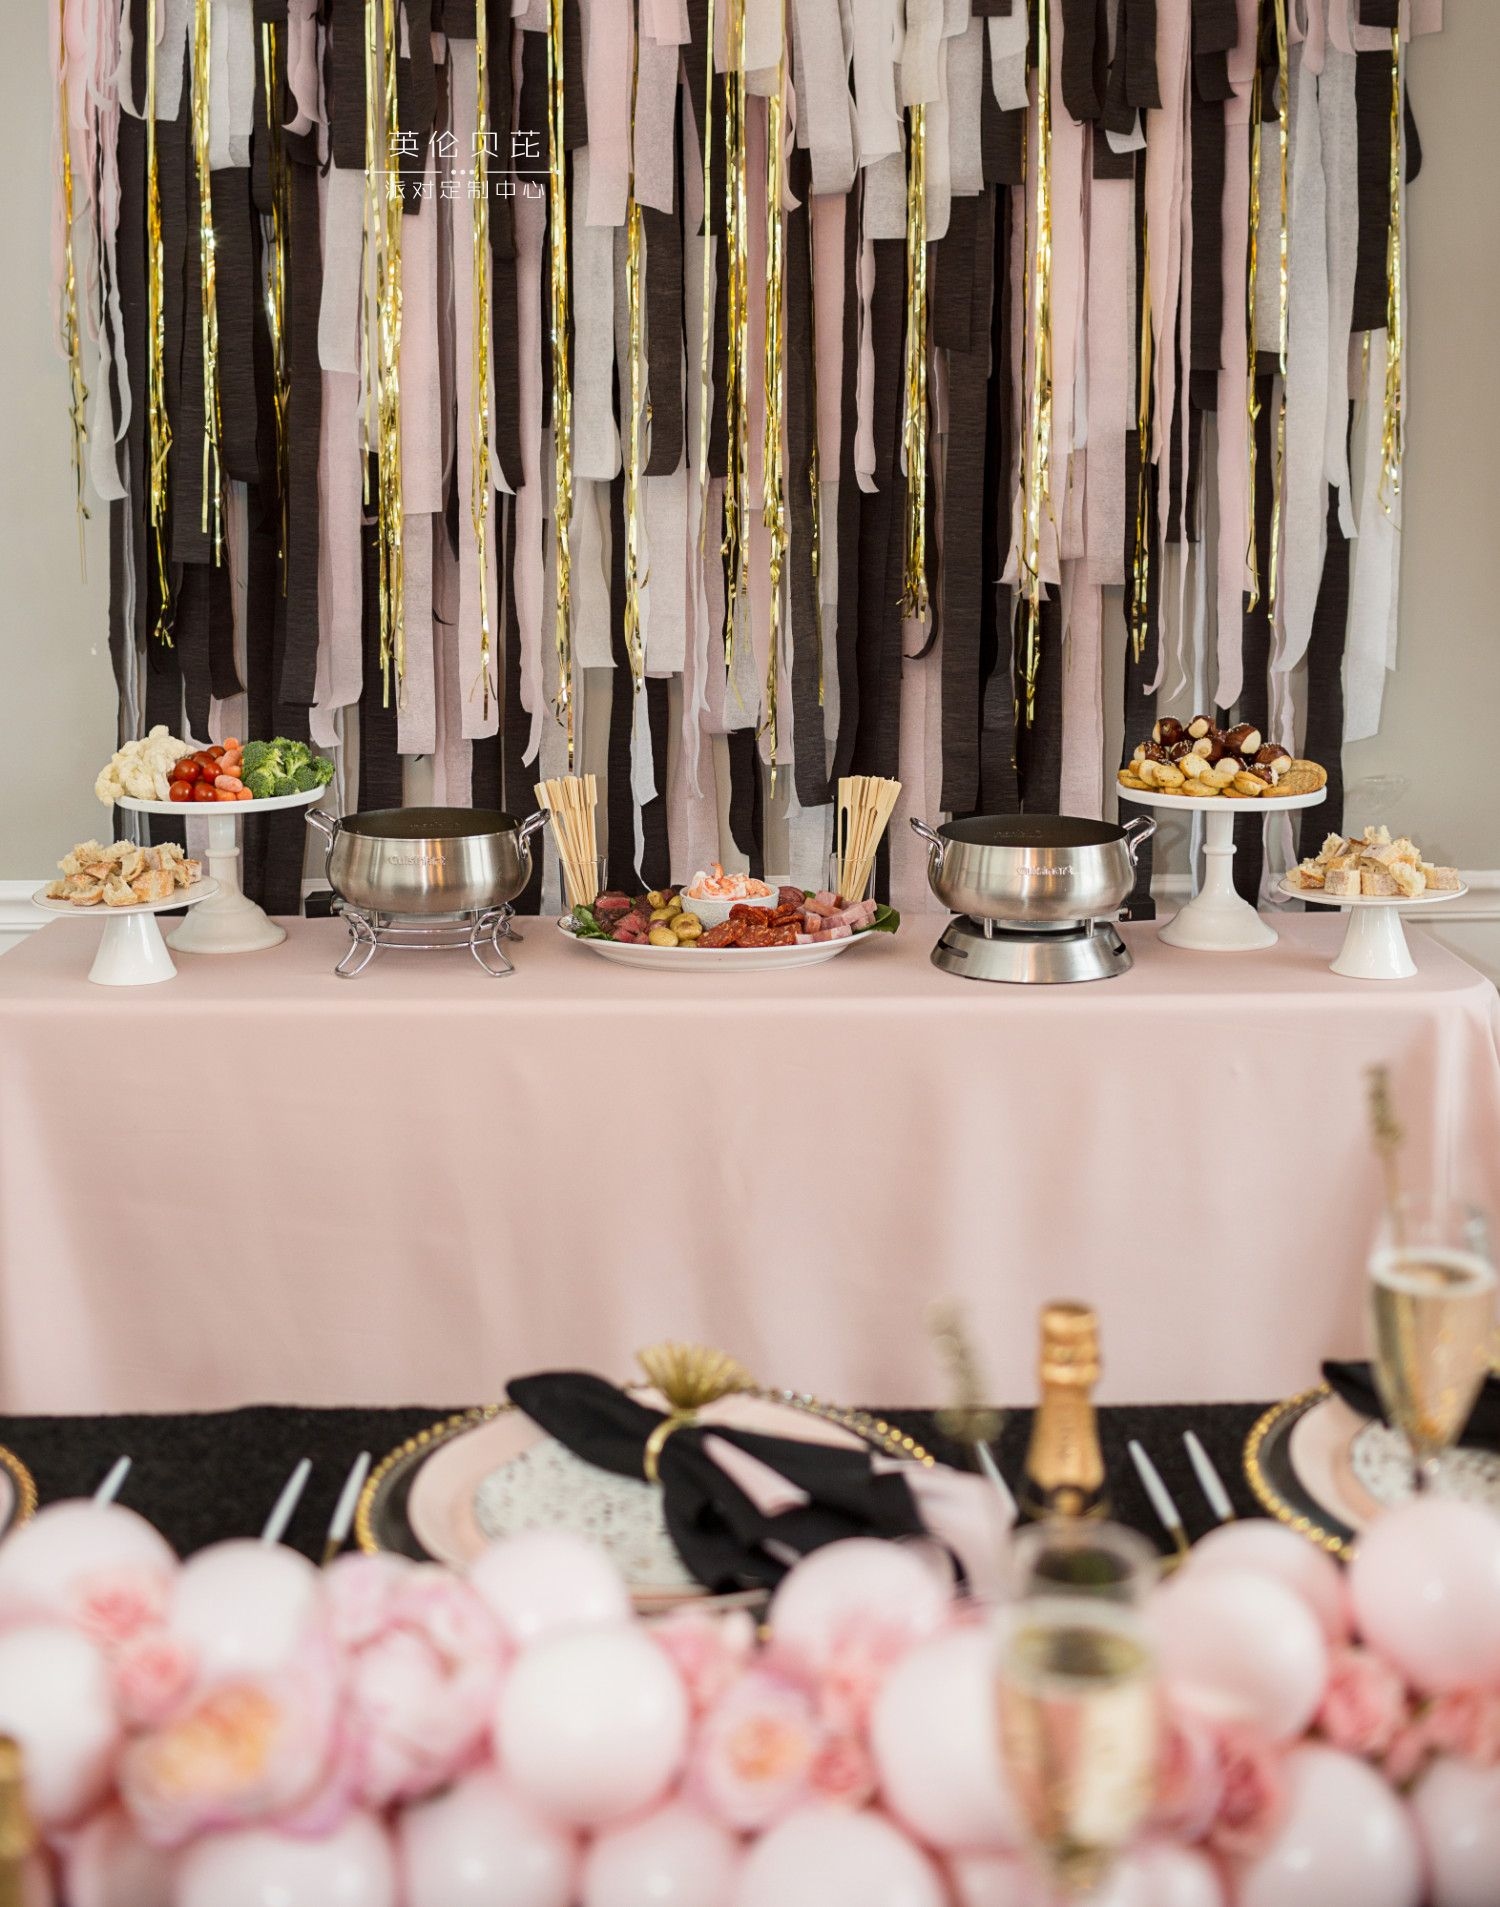 One-Stylish-Party-New-Years-Eve-33